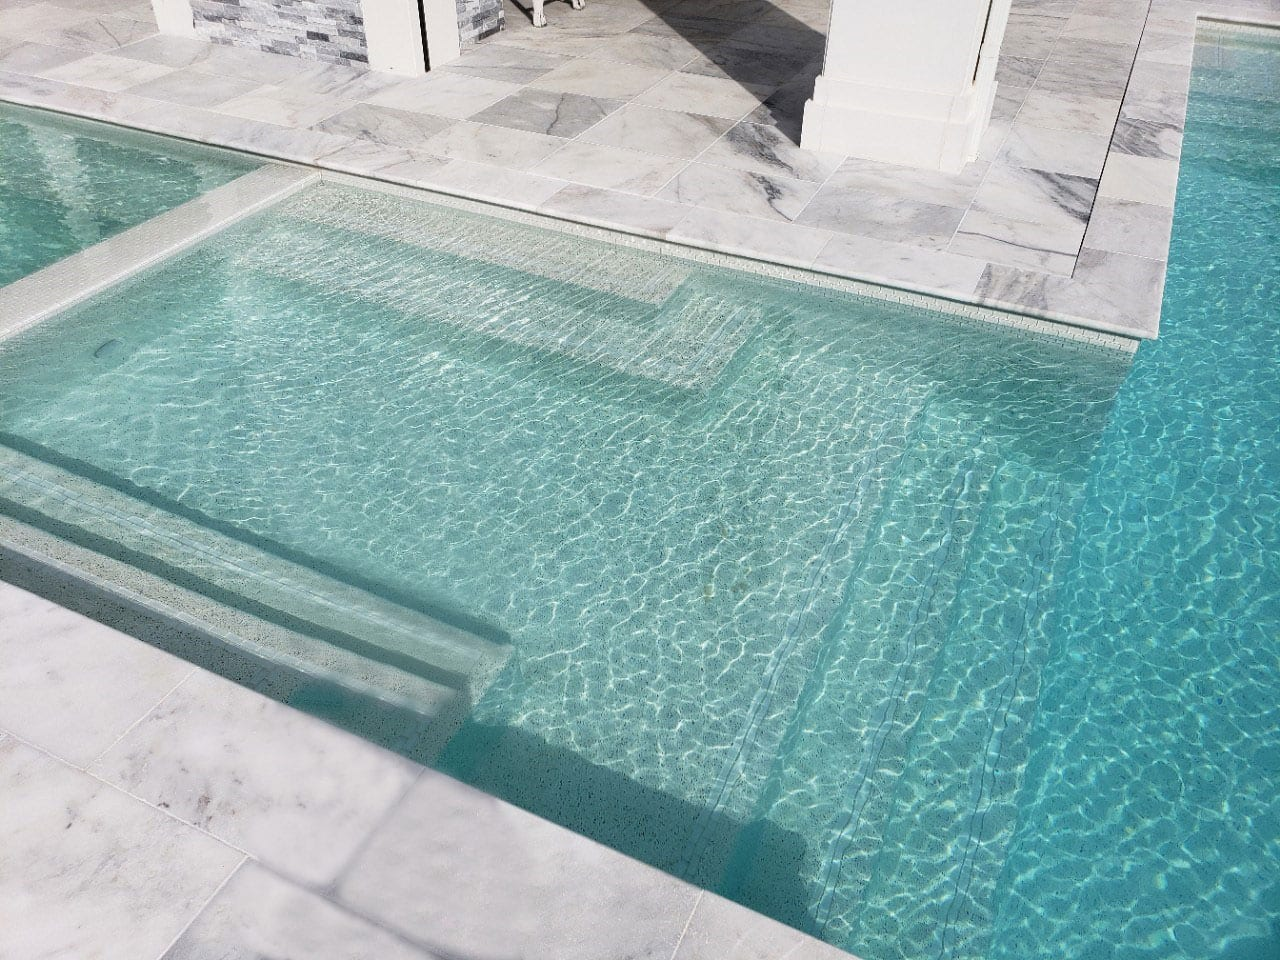 Stoneline-Group-Ice-White-Marble-Collection-Marble-Tumbled-Coping-Pool-deck-backyards-Outdoor-Pictures